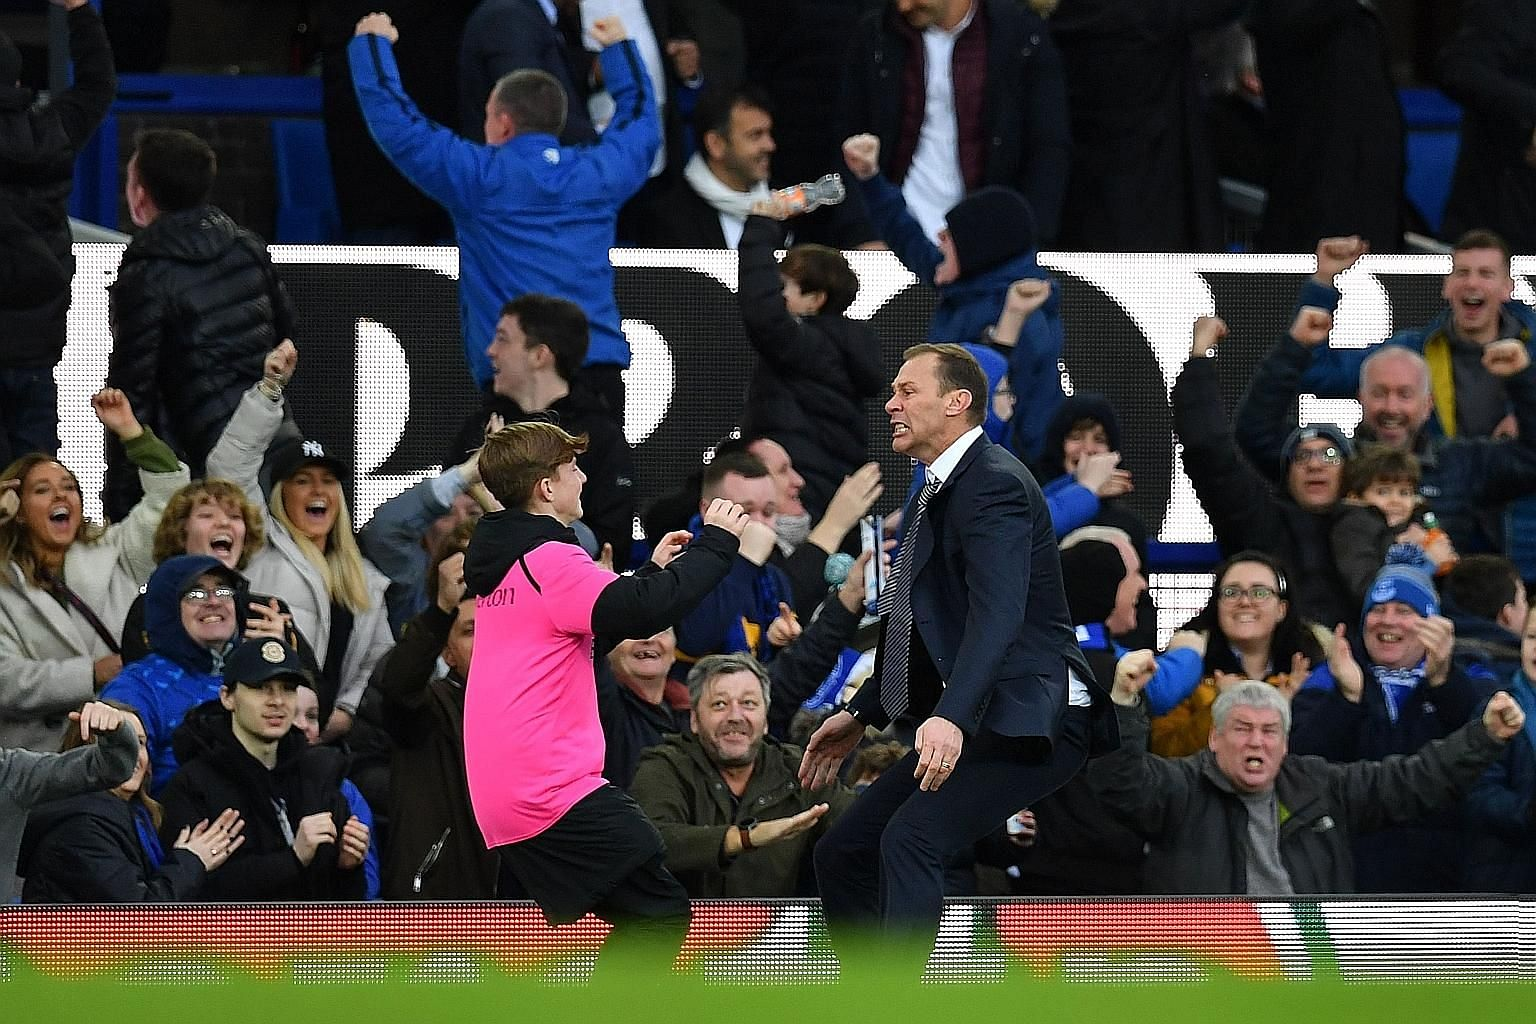 Everton's caretaker manager Duncan Ferguson running to embrace a ballboy, as he celebrates after striker Dominic Calvert-Lewin netted the final goal in their 3-1 Premier League win over Chelsea at Goodison Park yesterday